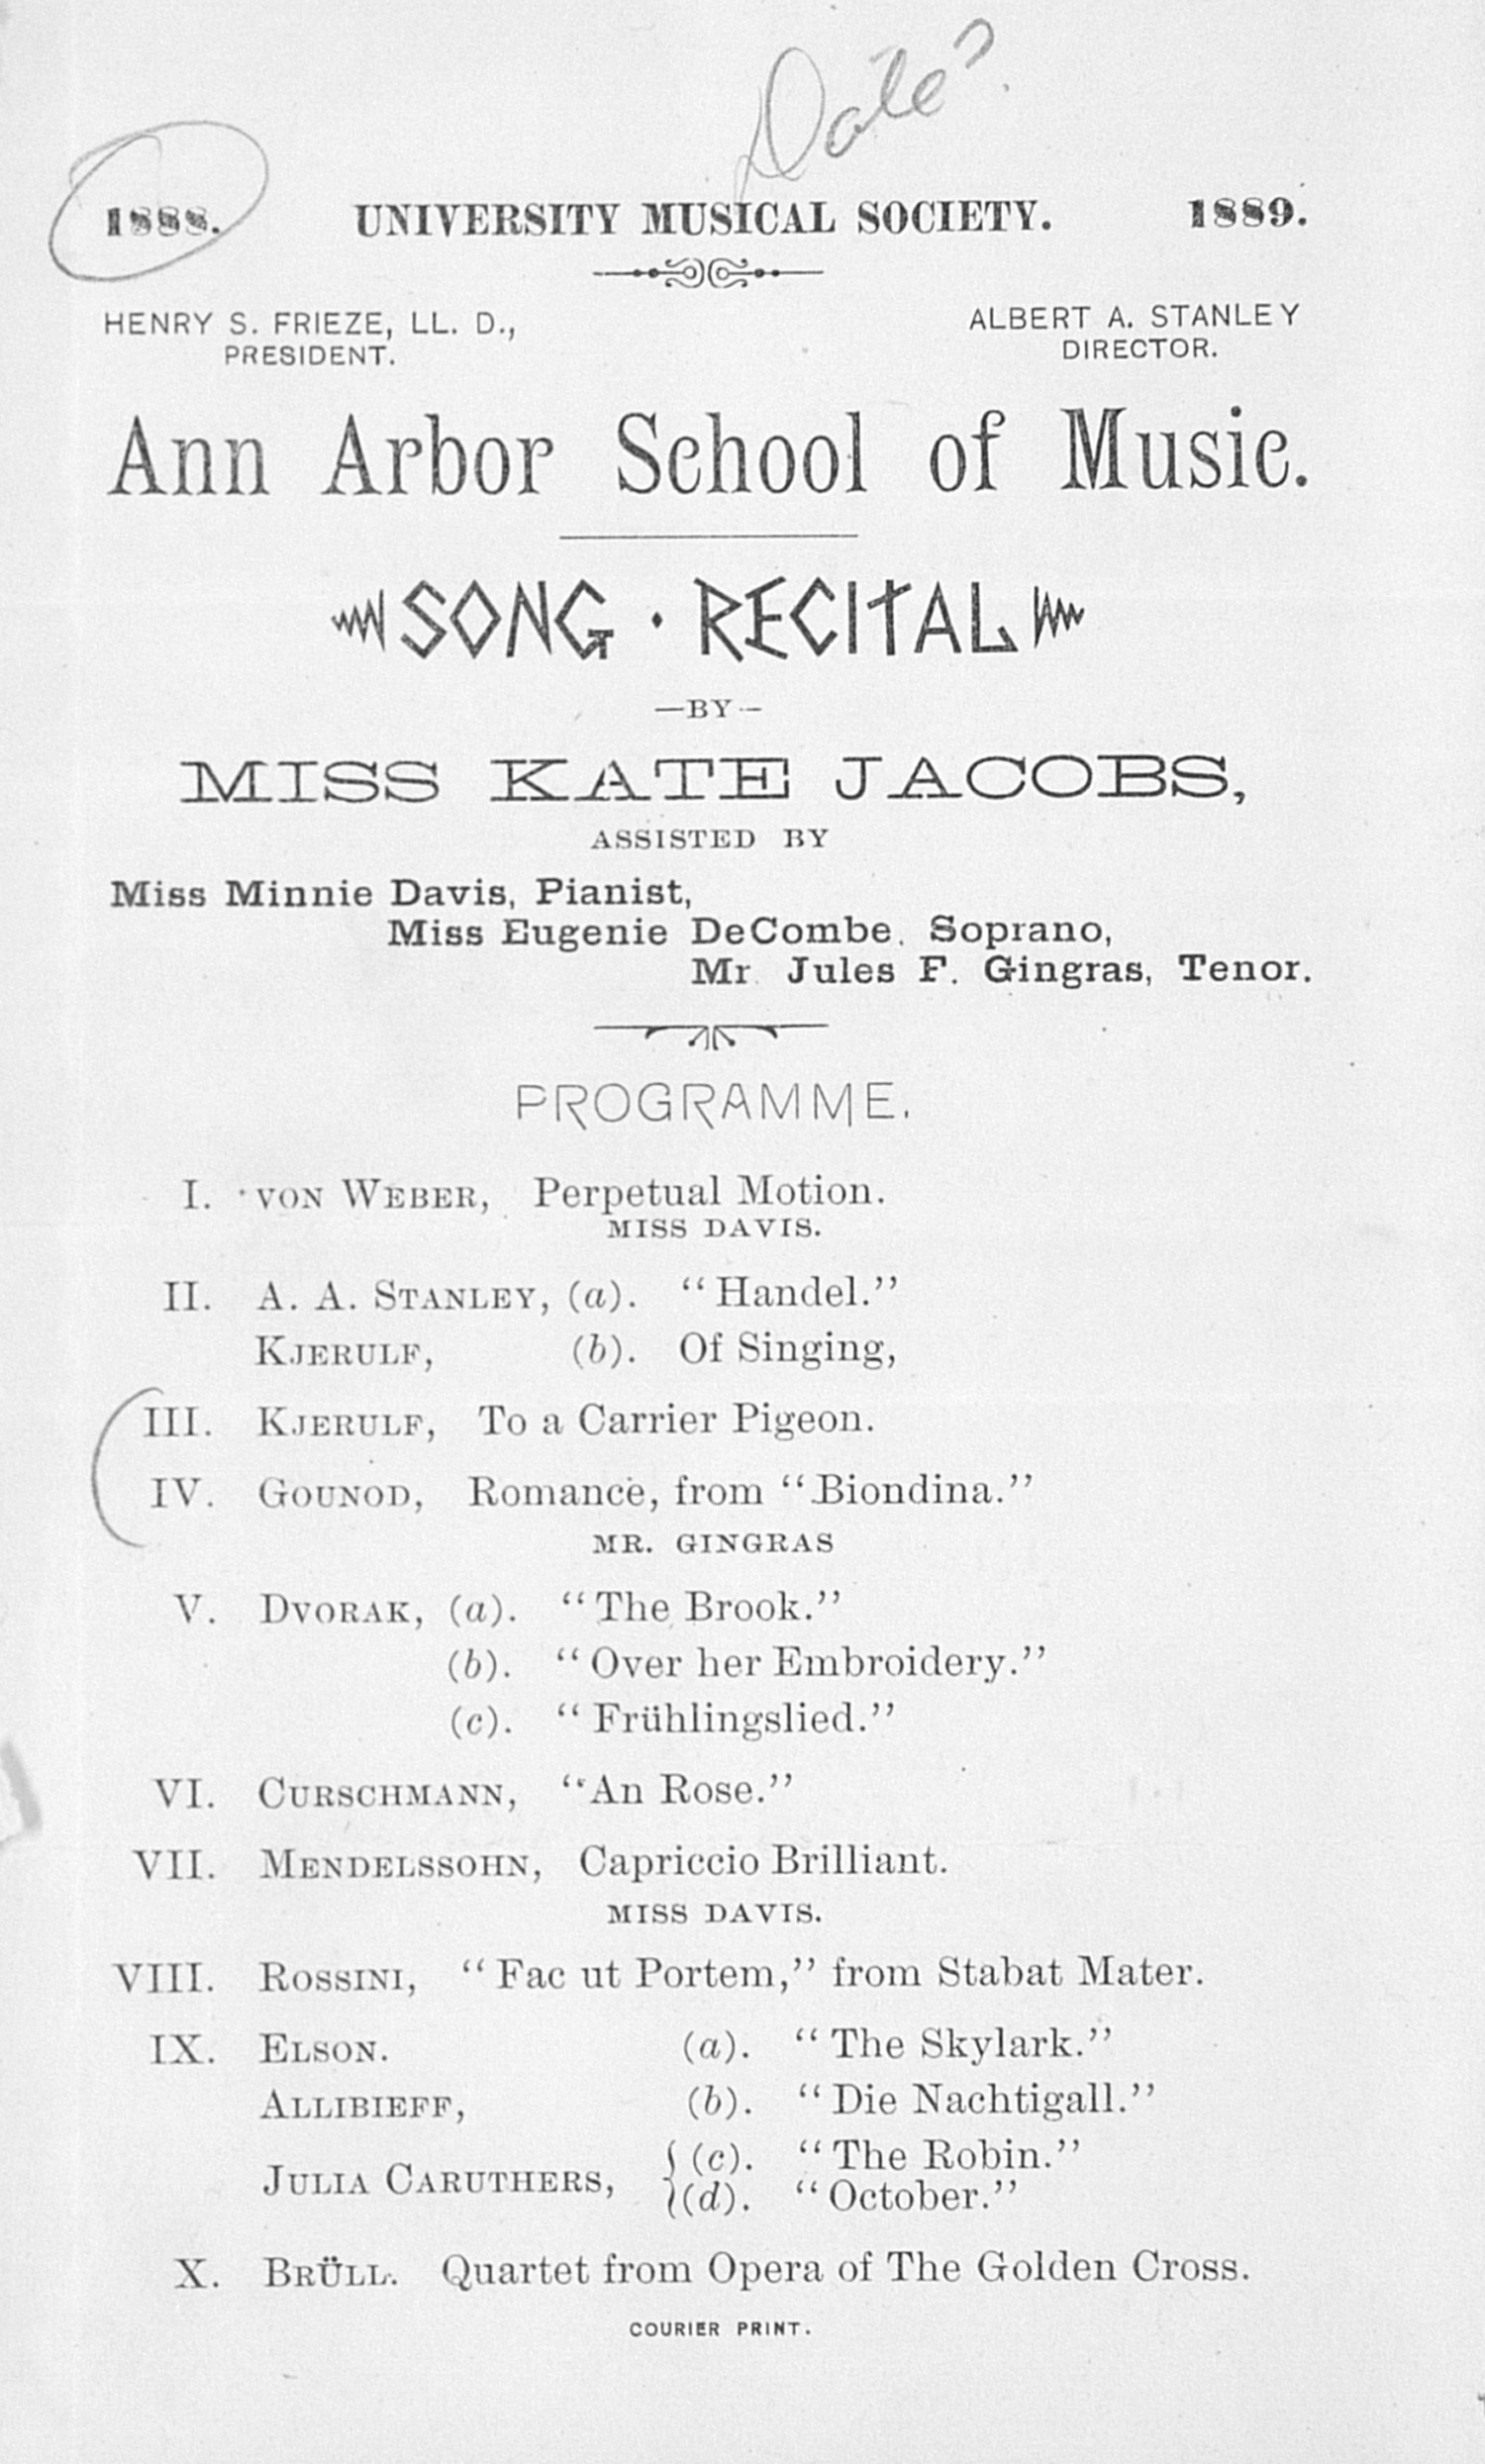 UMS Concert Program, : Song Recital -- Miss Kate Jacobs image